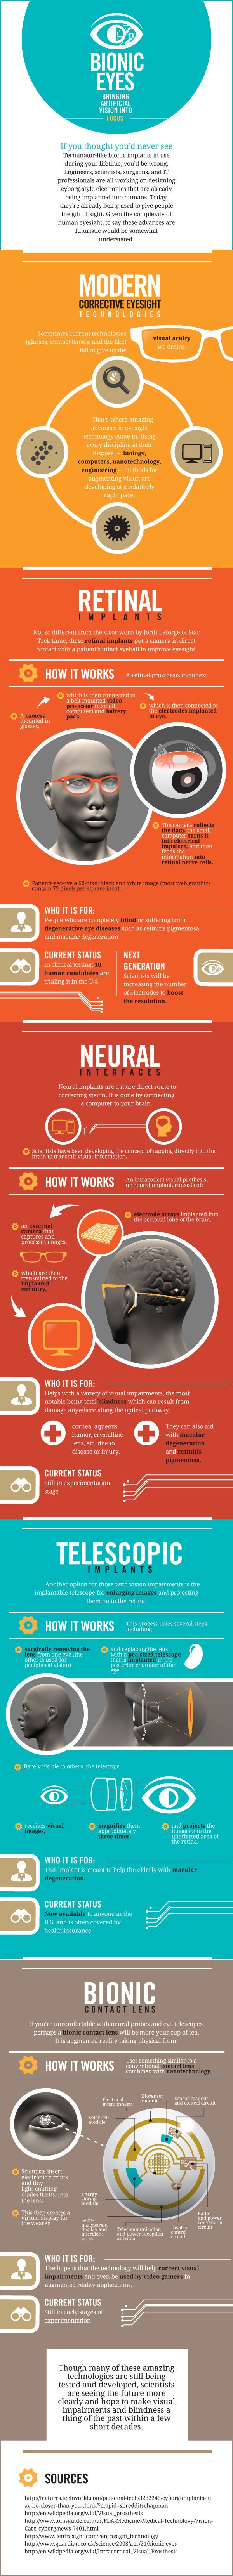 Colour therapy for eyesight - Bionic Eyes